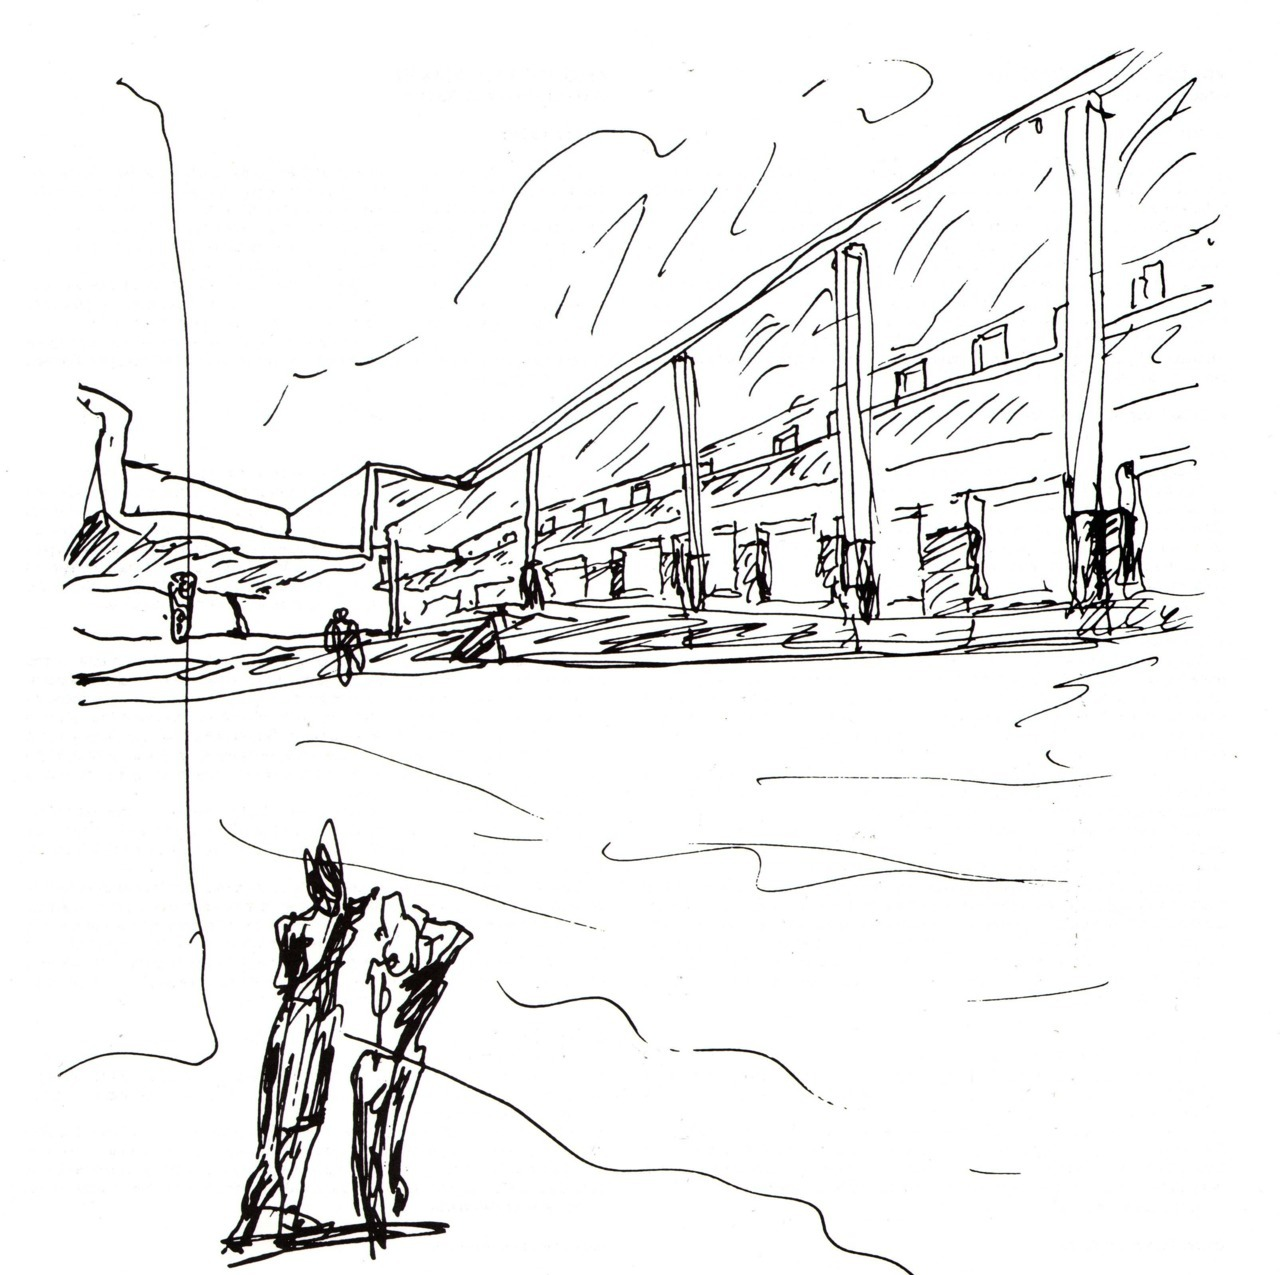 BLACK & WHITE SKETCHES | 015 | ÁLVARO SIZA VIEIRA